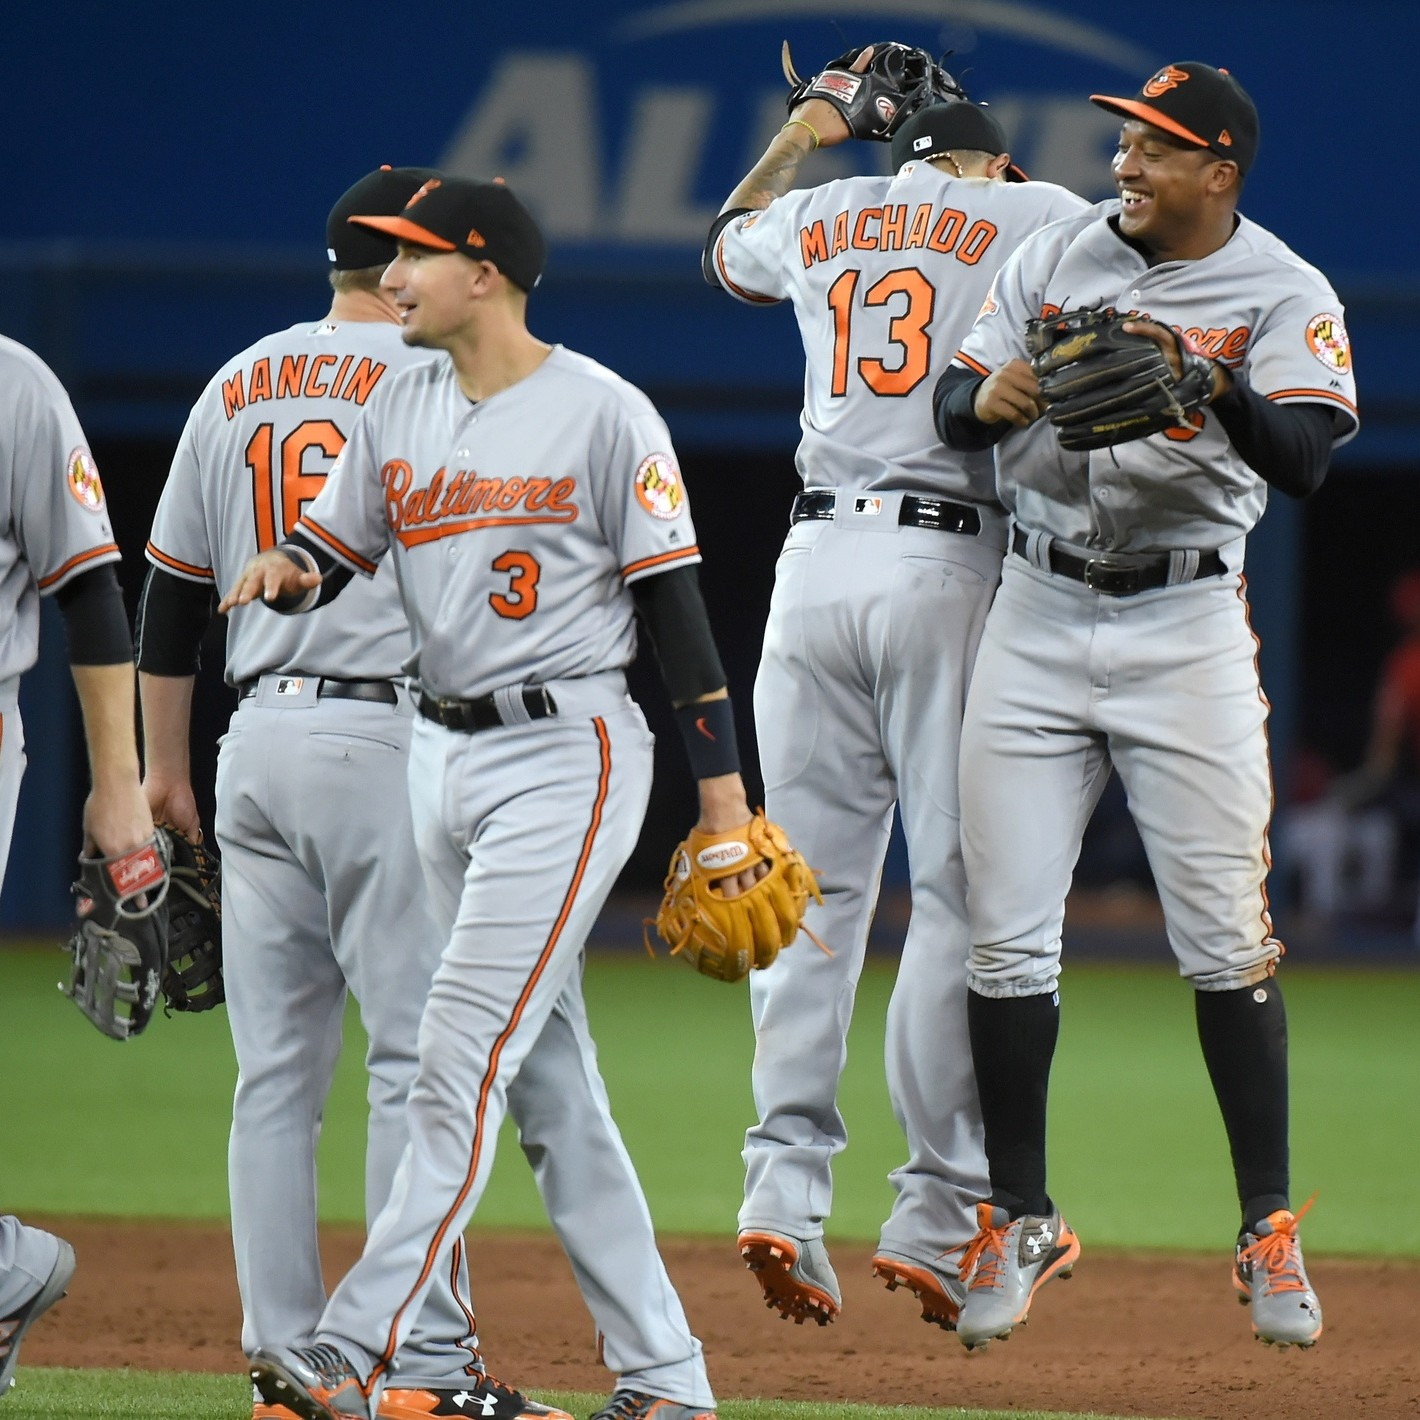 How-the-hell-do-the-orioles-keep-winning-1492553042.jpg?crop=0